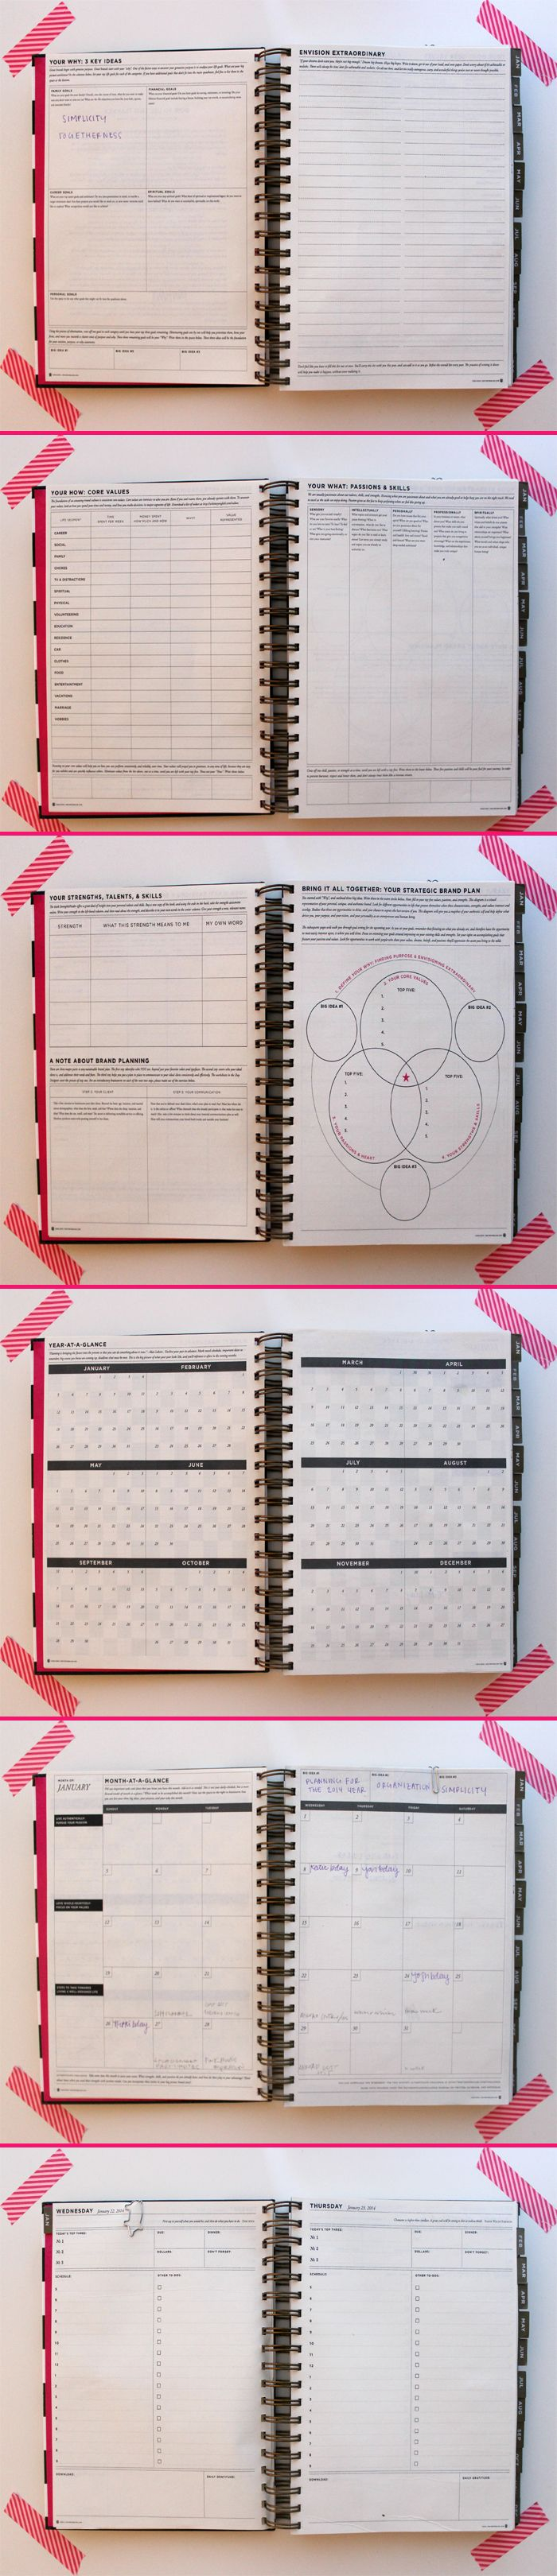 2014 Planner: Whitney English Day Designer review